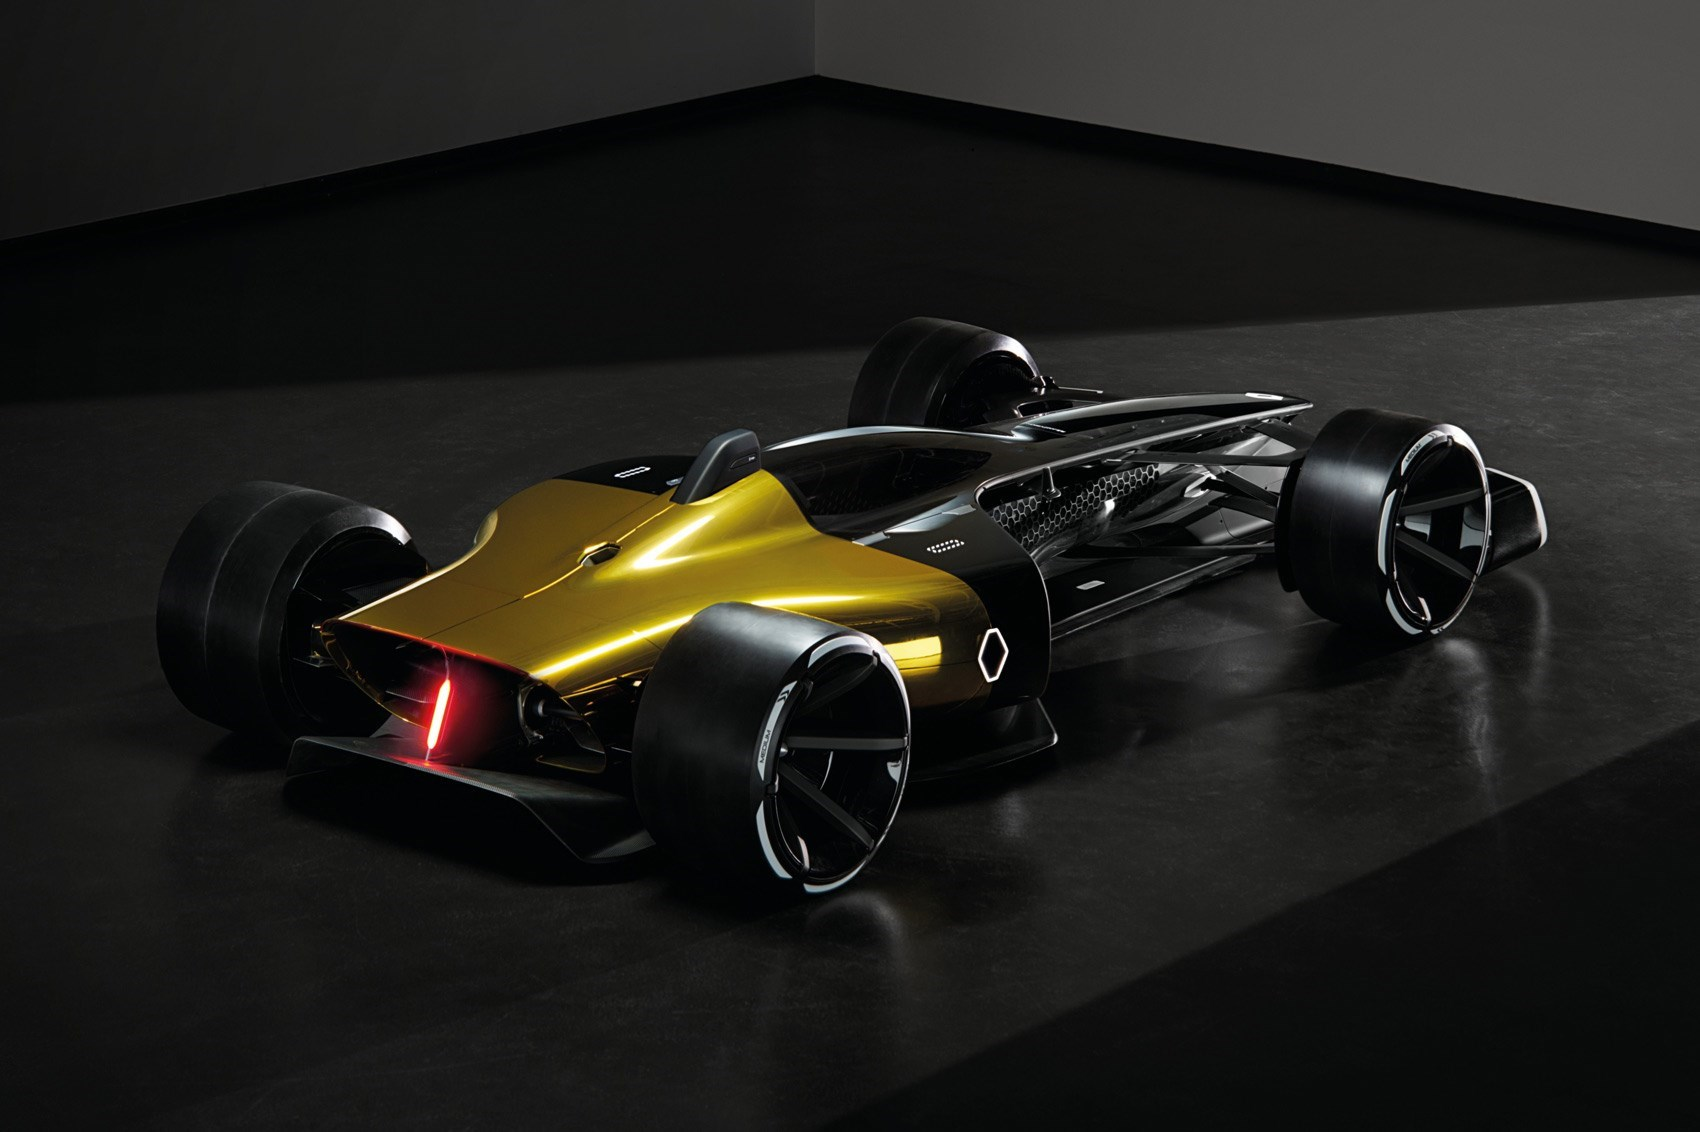 renault symbioz concept car revealed in pictures by car magazine. Black Bedroom Furniture Sets. Home Design Ideas